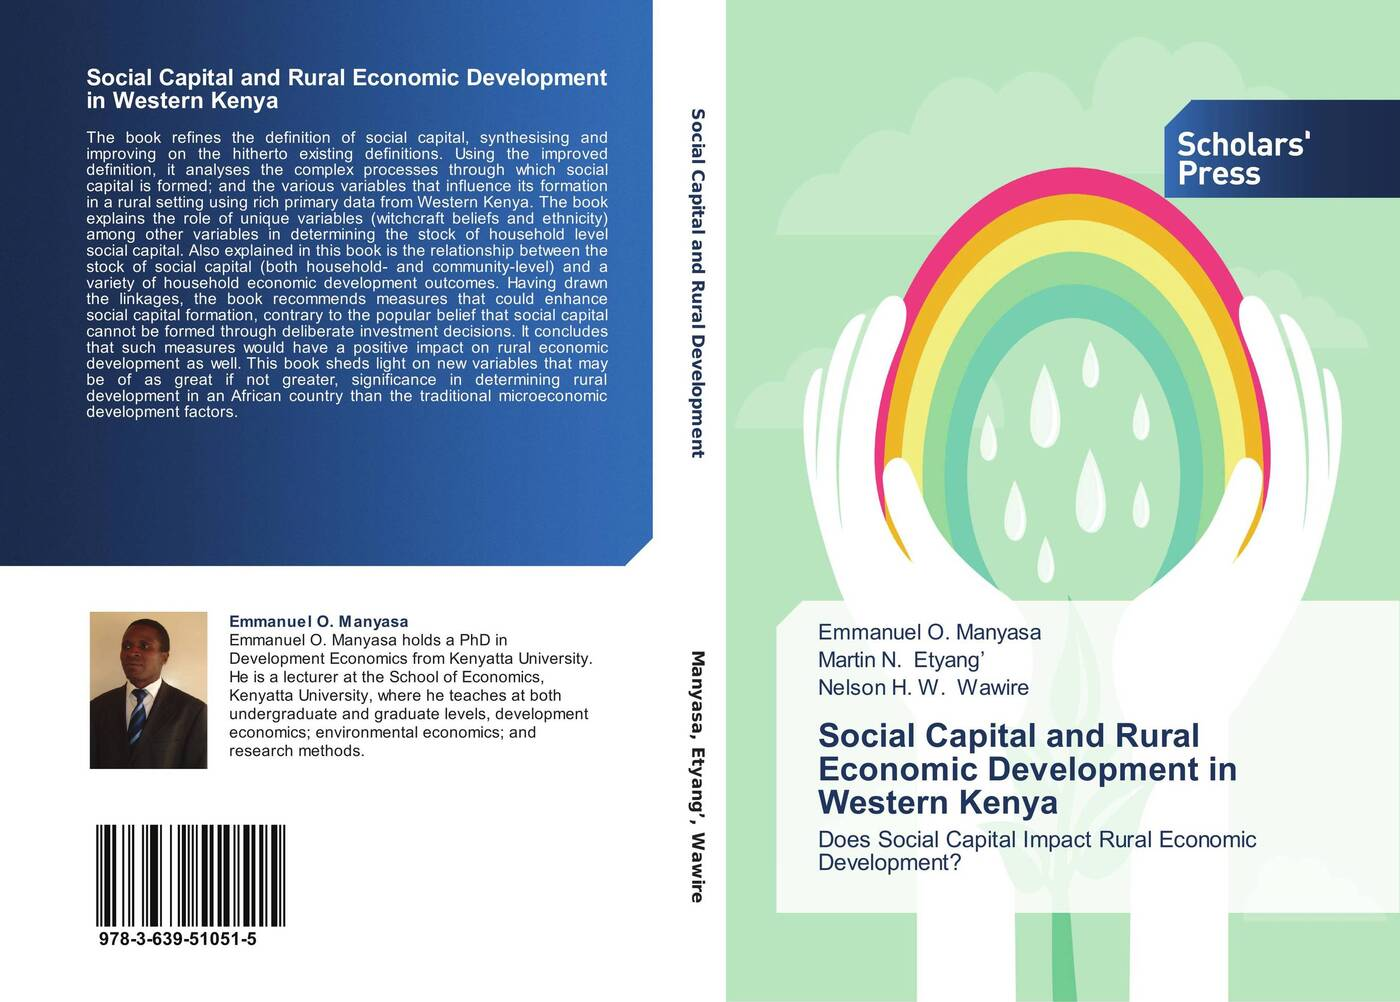 Emmanuel O. Manyasa,Martin N. Etyang' and Nelson H. W. Wawire Social Capital and Rural Economic Development in Western Kenya role of social capital in rural livelihood promotion